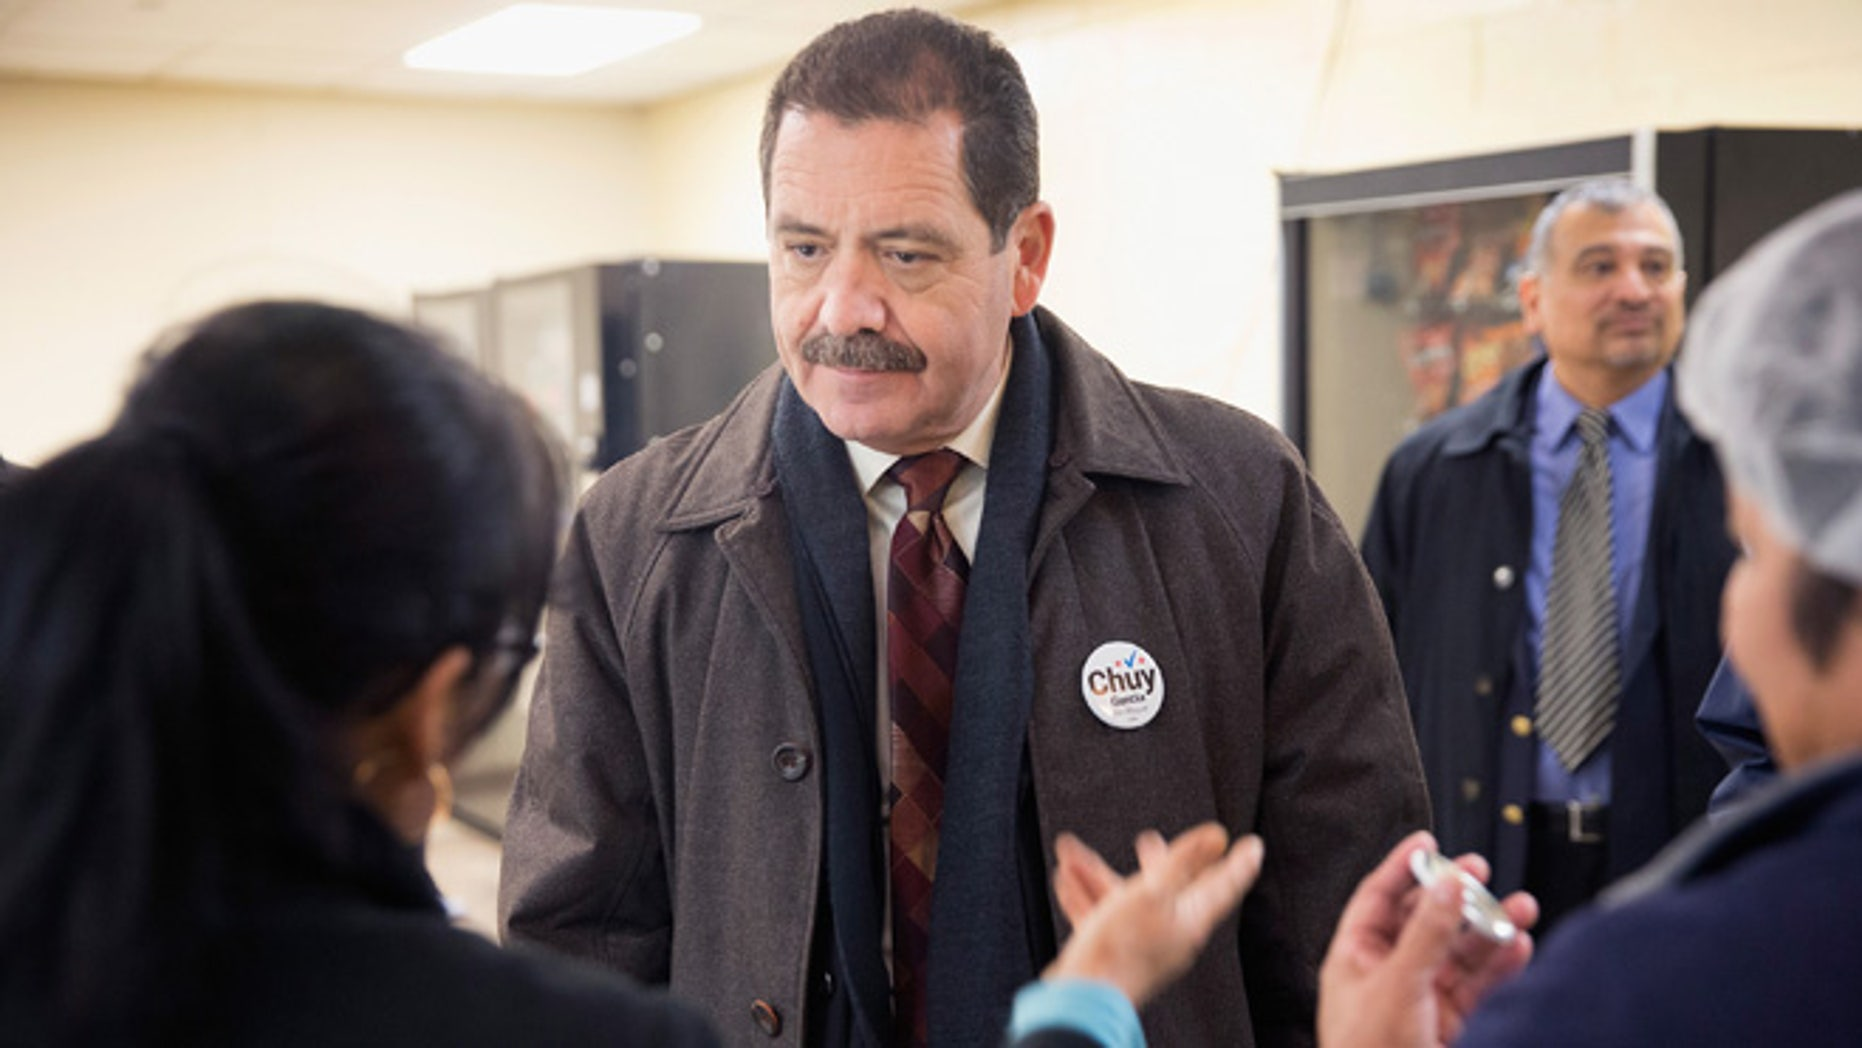 """CHICAGO, IL - FEBRUARY 23:  Chicago Mayoral candidate Jesus """"Chuy"""" Garcia greets workers during a campaign stop at a linen and uniform service company on February 23, 2015 in Chicago, Illinois. Recent polls show Garcia is running second to incumbent Mayor Rahm Emanuel whose lead is not currently large enough to avoid a runoff election. Chicago residents go to the polls Tuesday, February 24.  (Photo by Scott Olson/Getty Images)"""